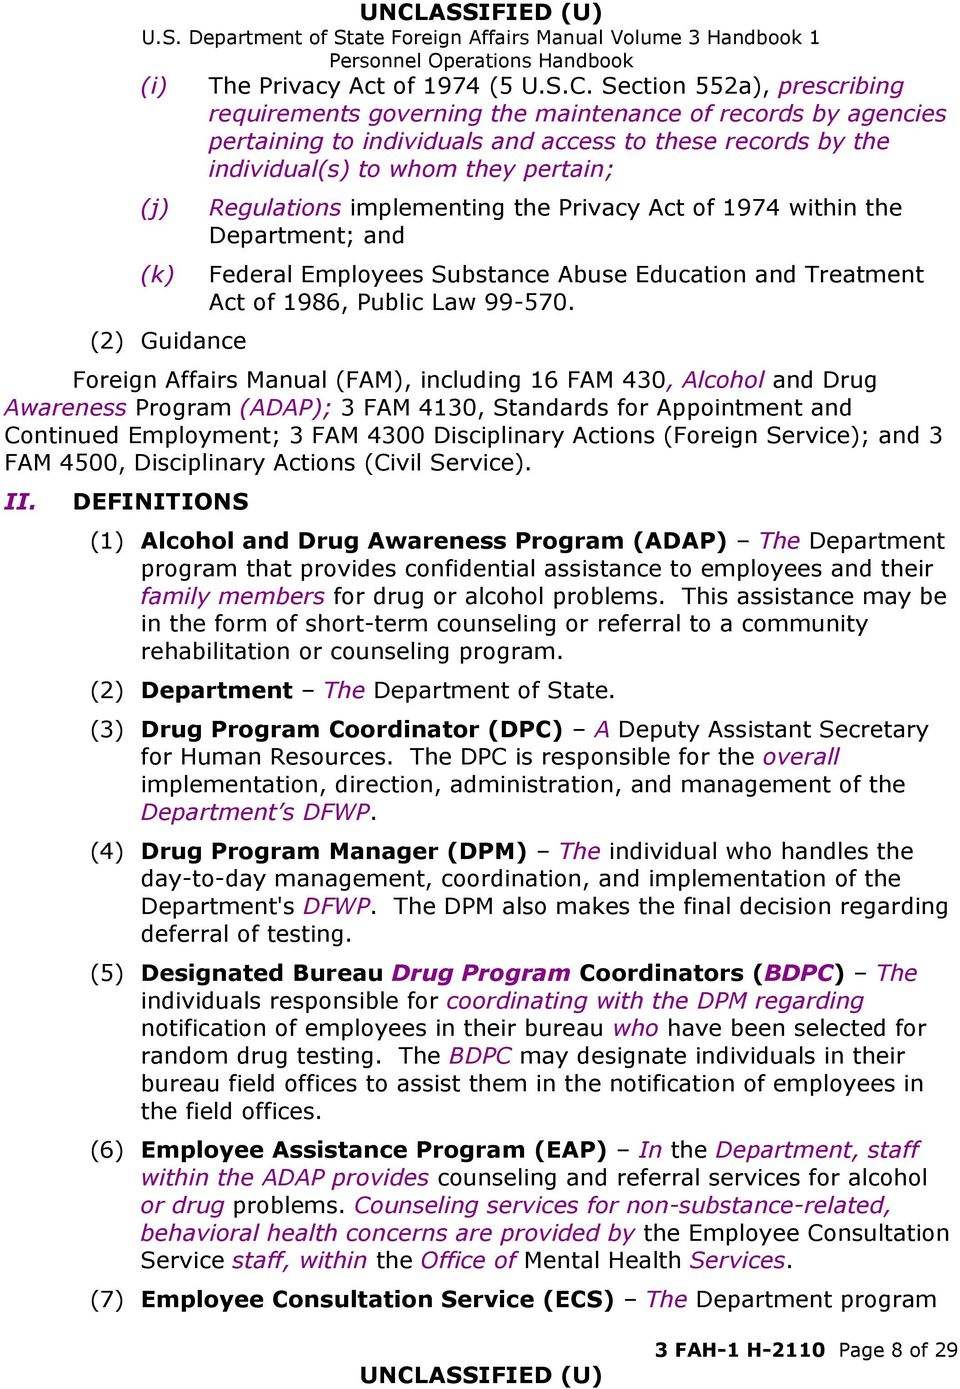 Guidance Regulations implementing the Privacy Act of 1974 within the Department; and Federal Employees Substance Abuse Education and Treatment Act of 1986, Public Law 99-570.